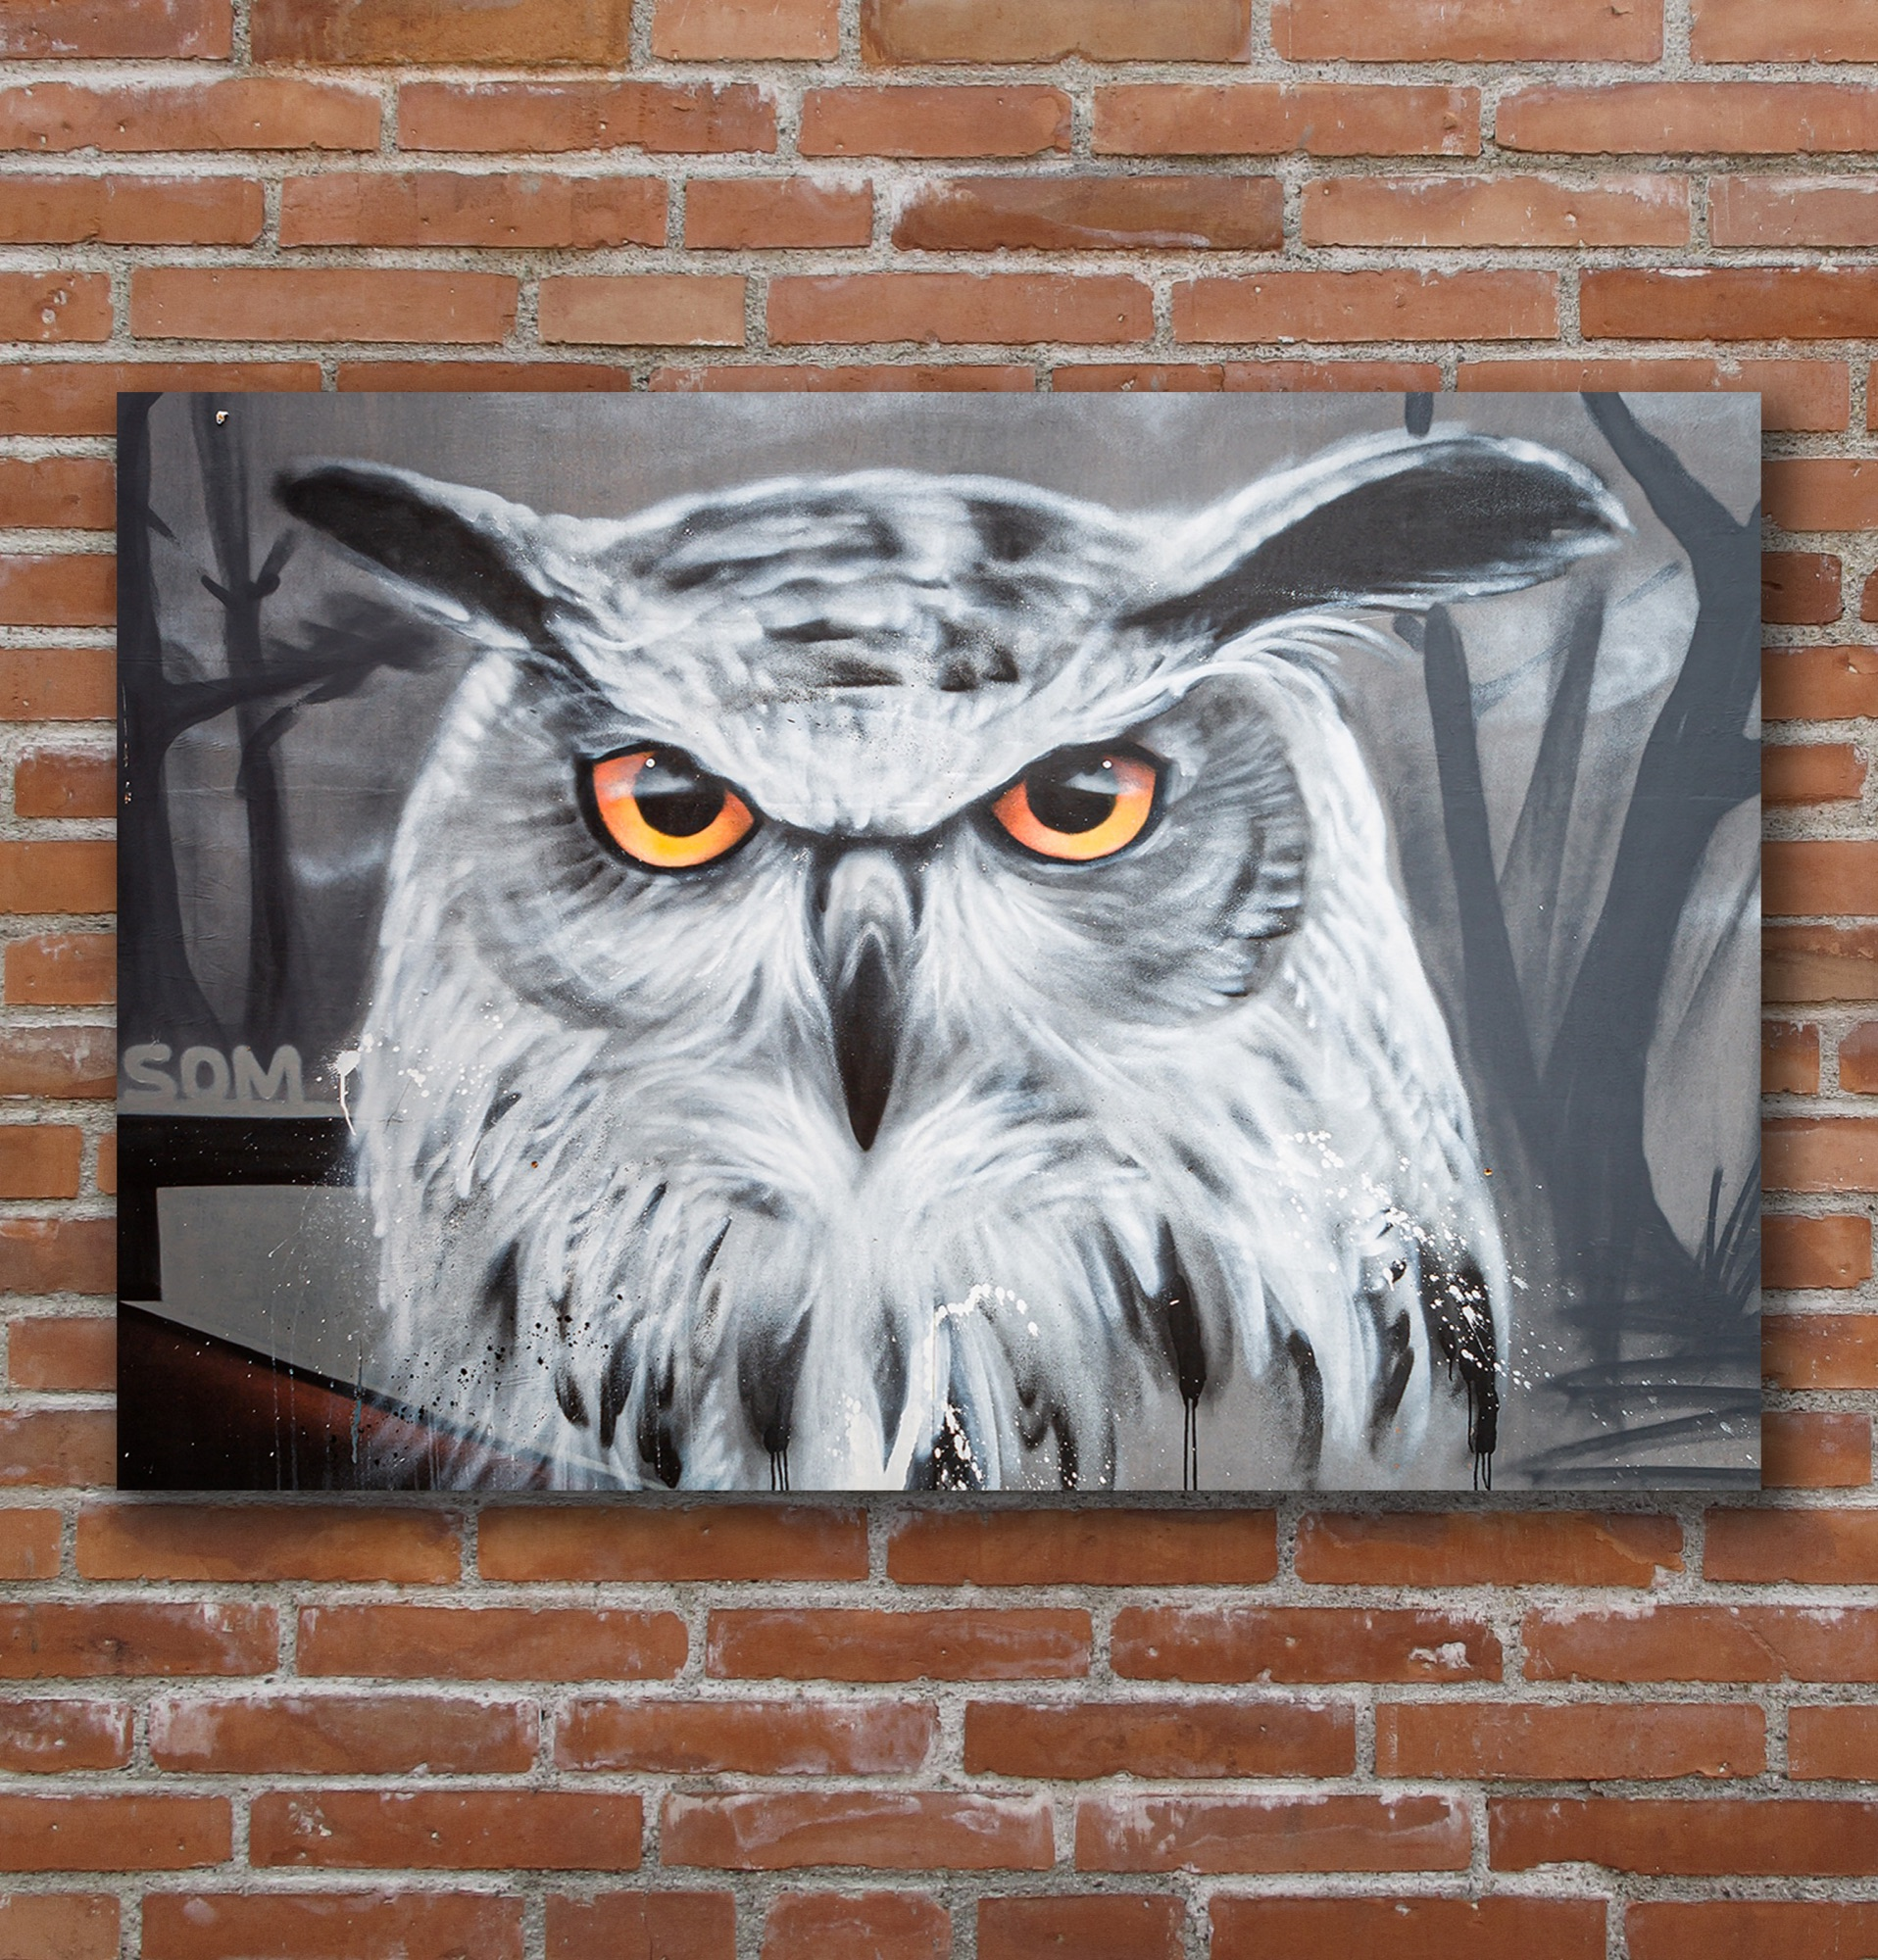 Graffiti image of tawny owl with orange eyes.